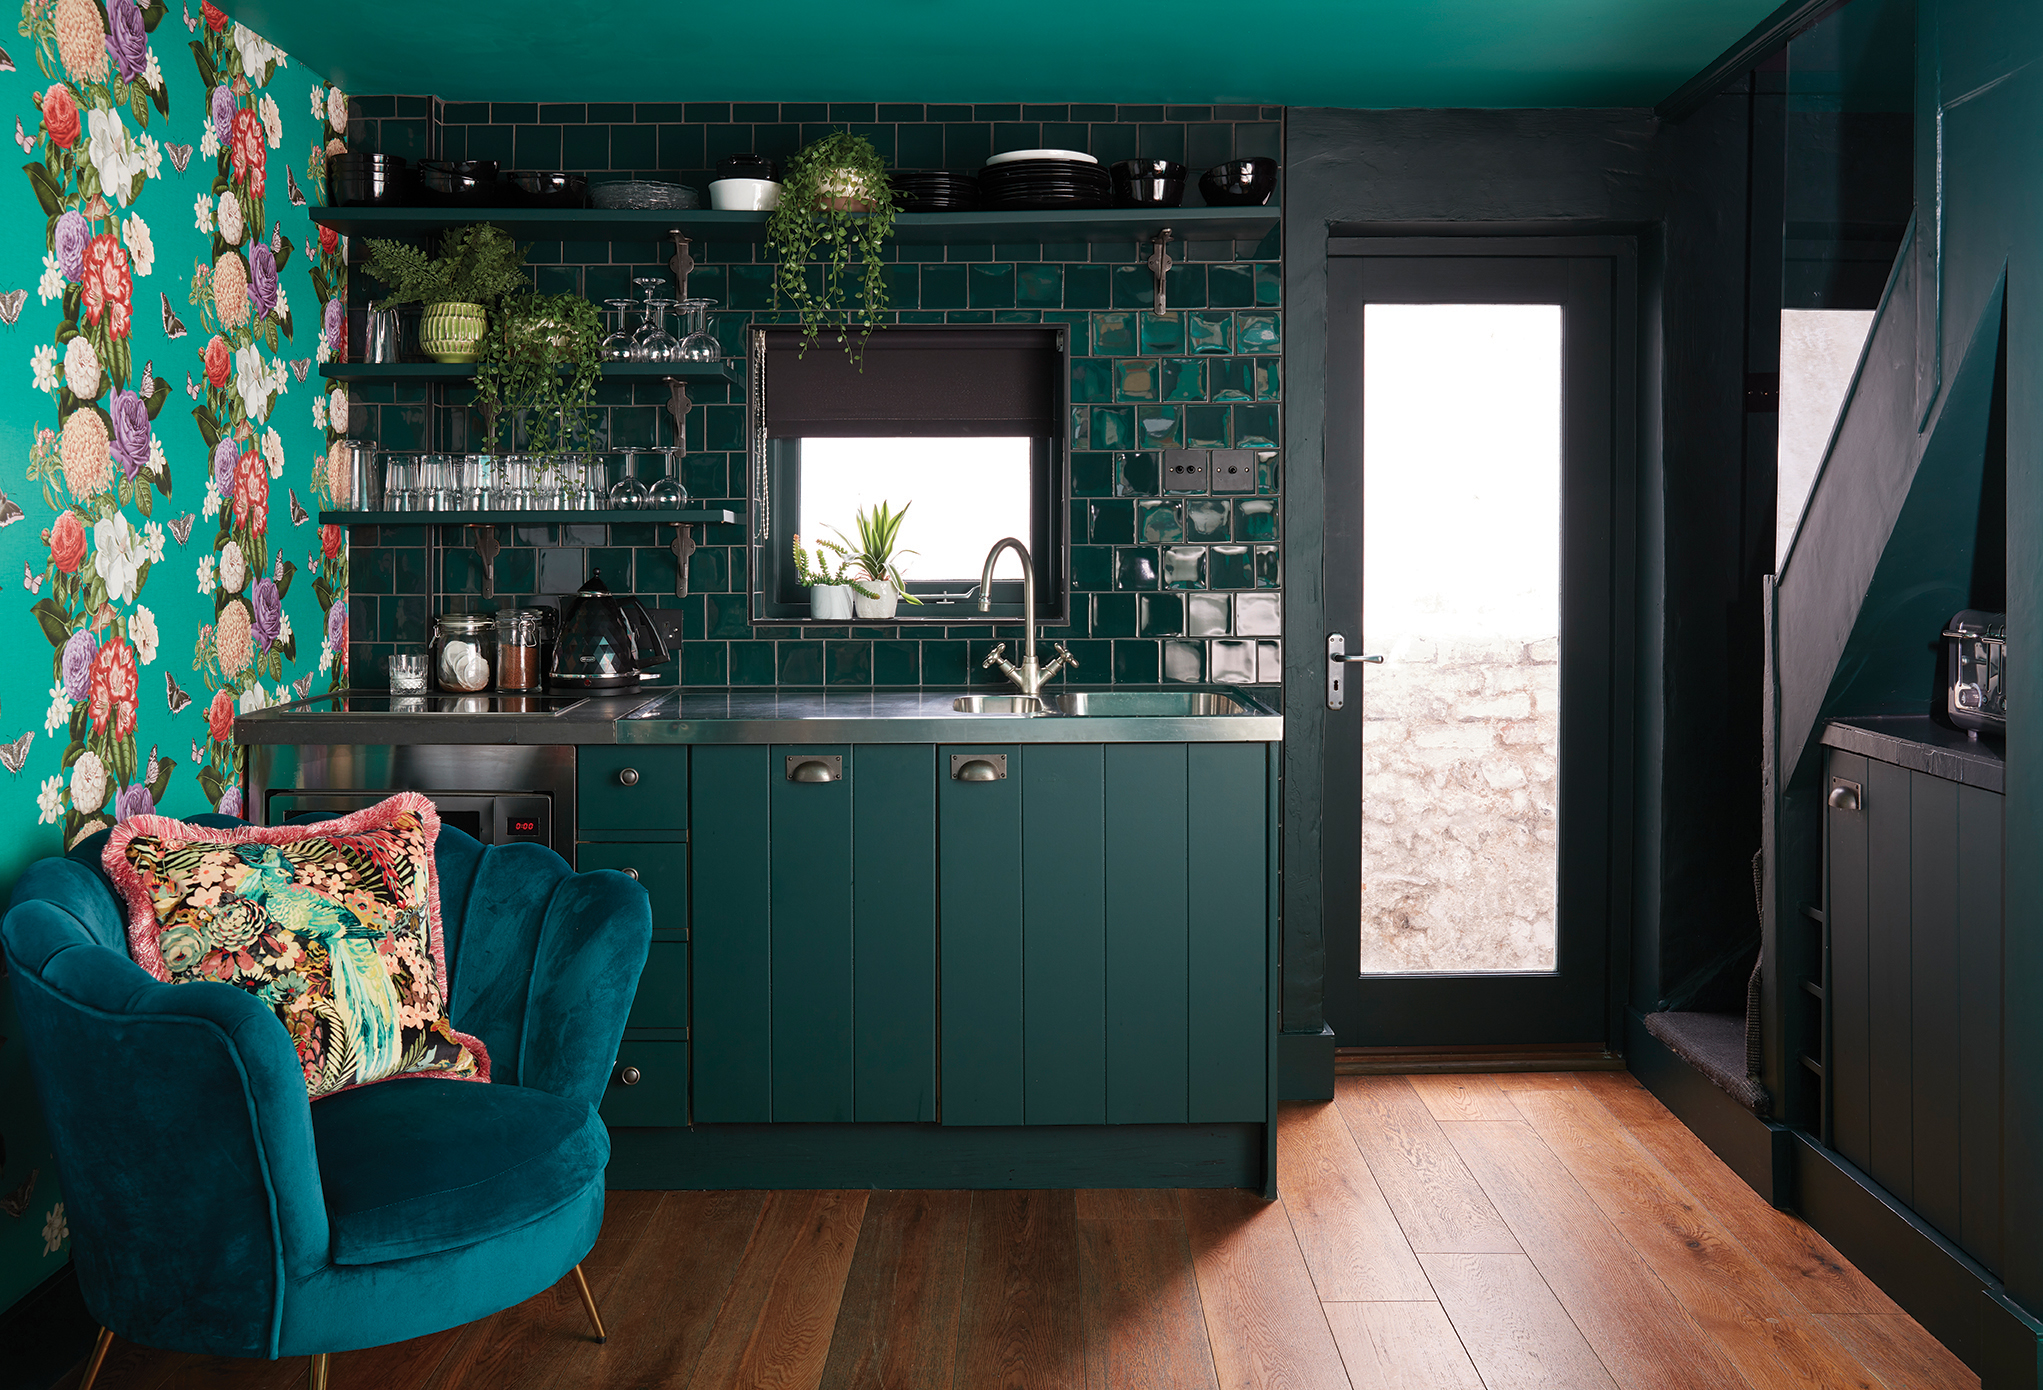 Image of a green tile splashback from Ca' Pietra